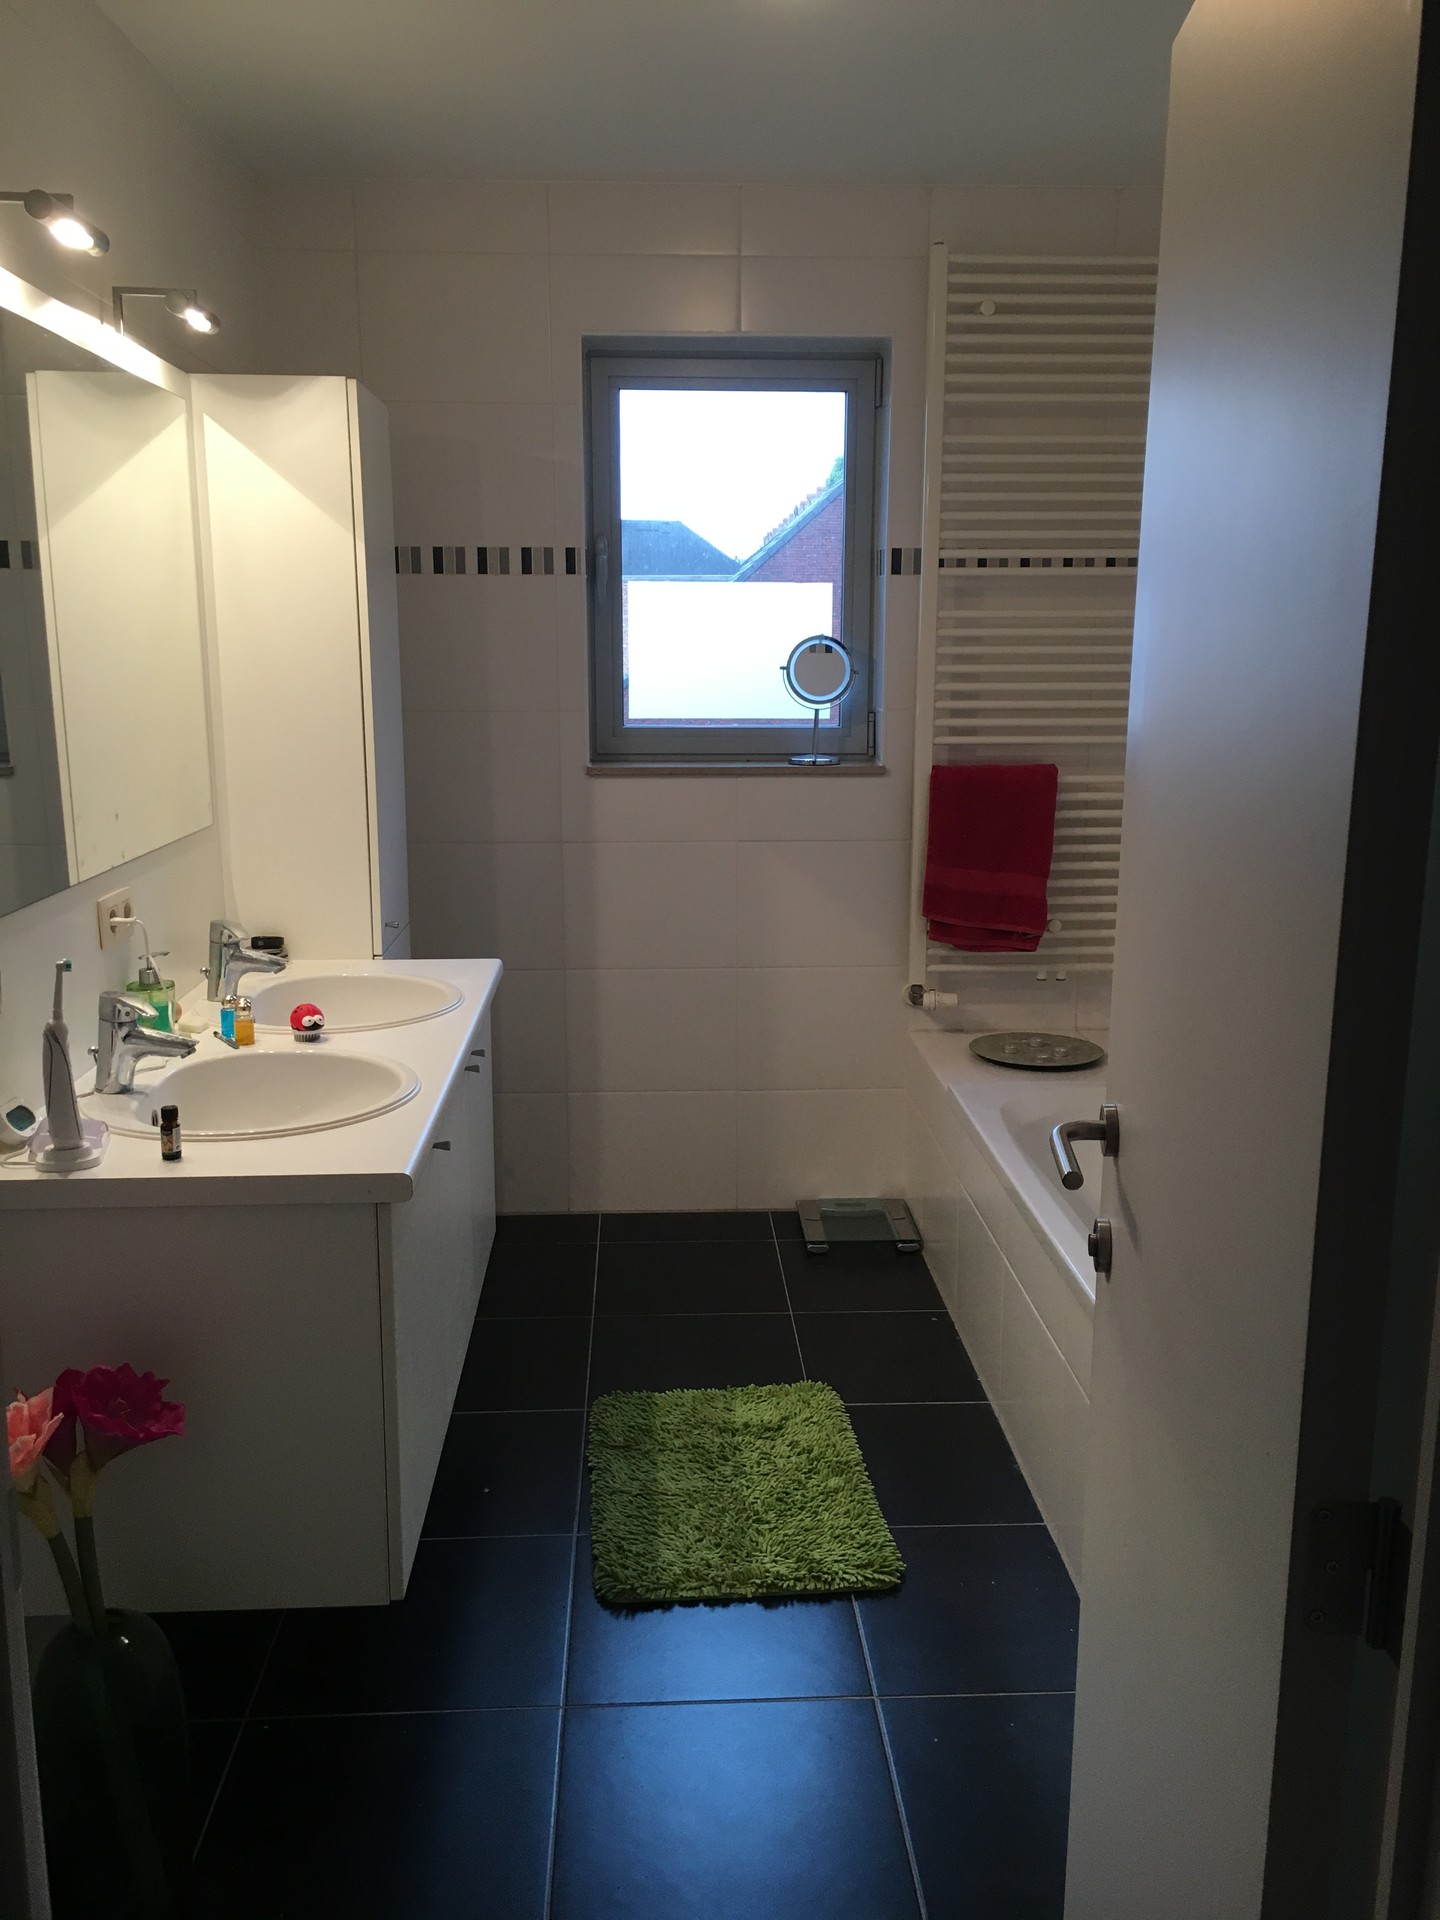 spacious-fully-furnished-flat-2-rooms-27b0985c40fcbbdb952059d3898db930